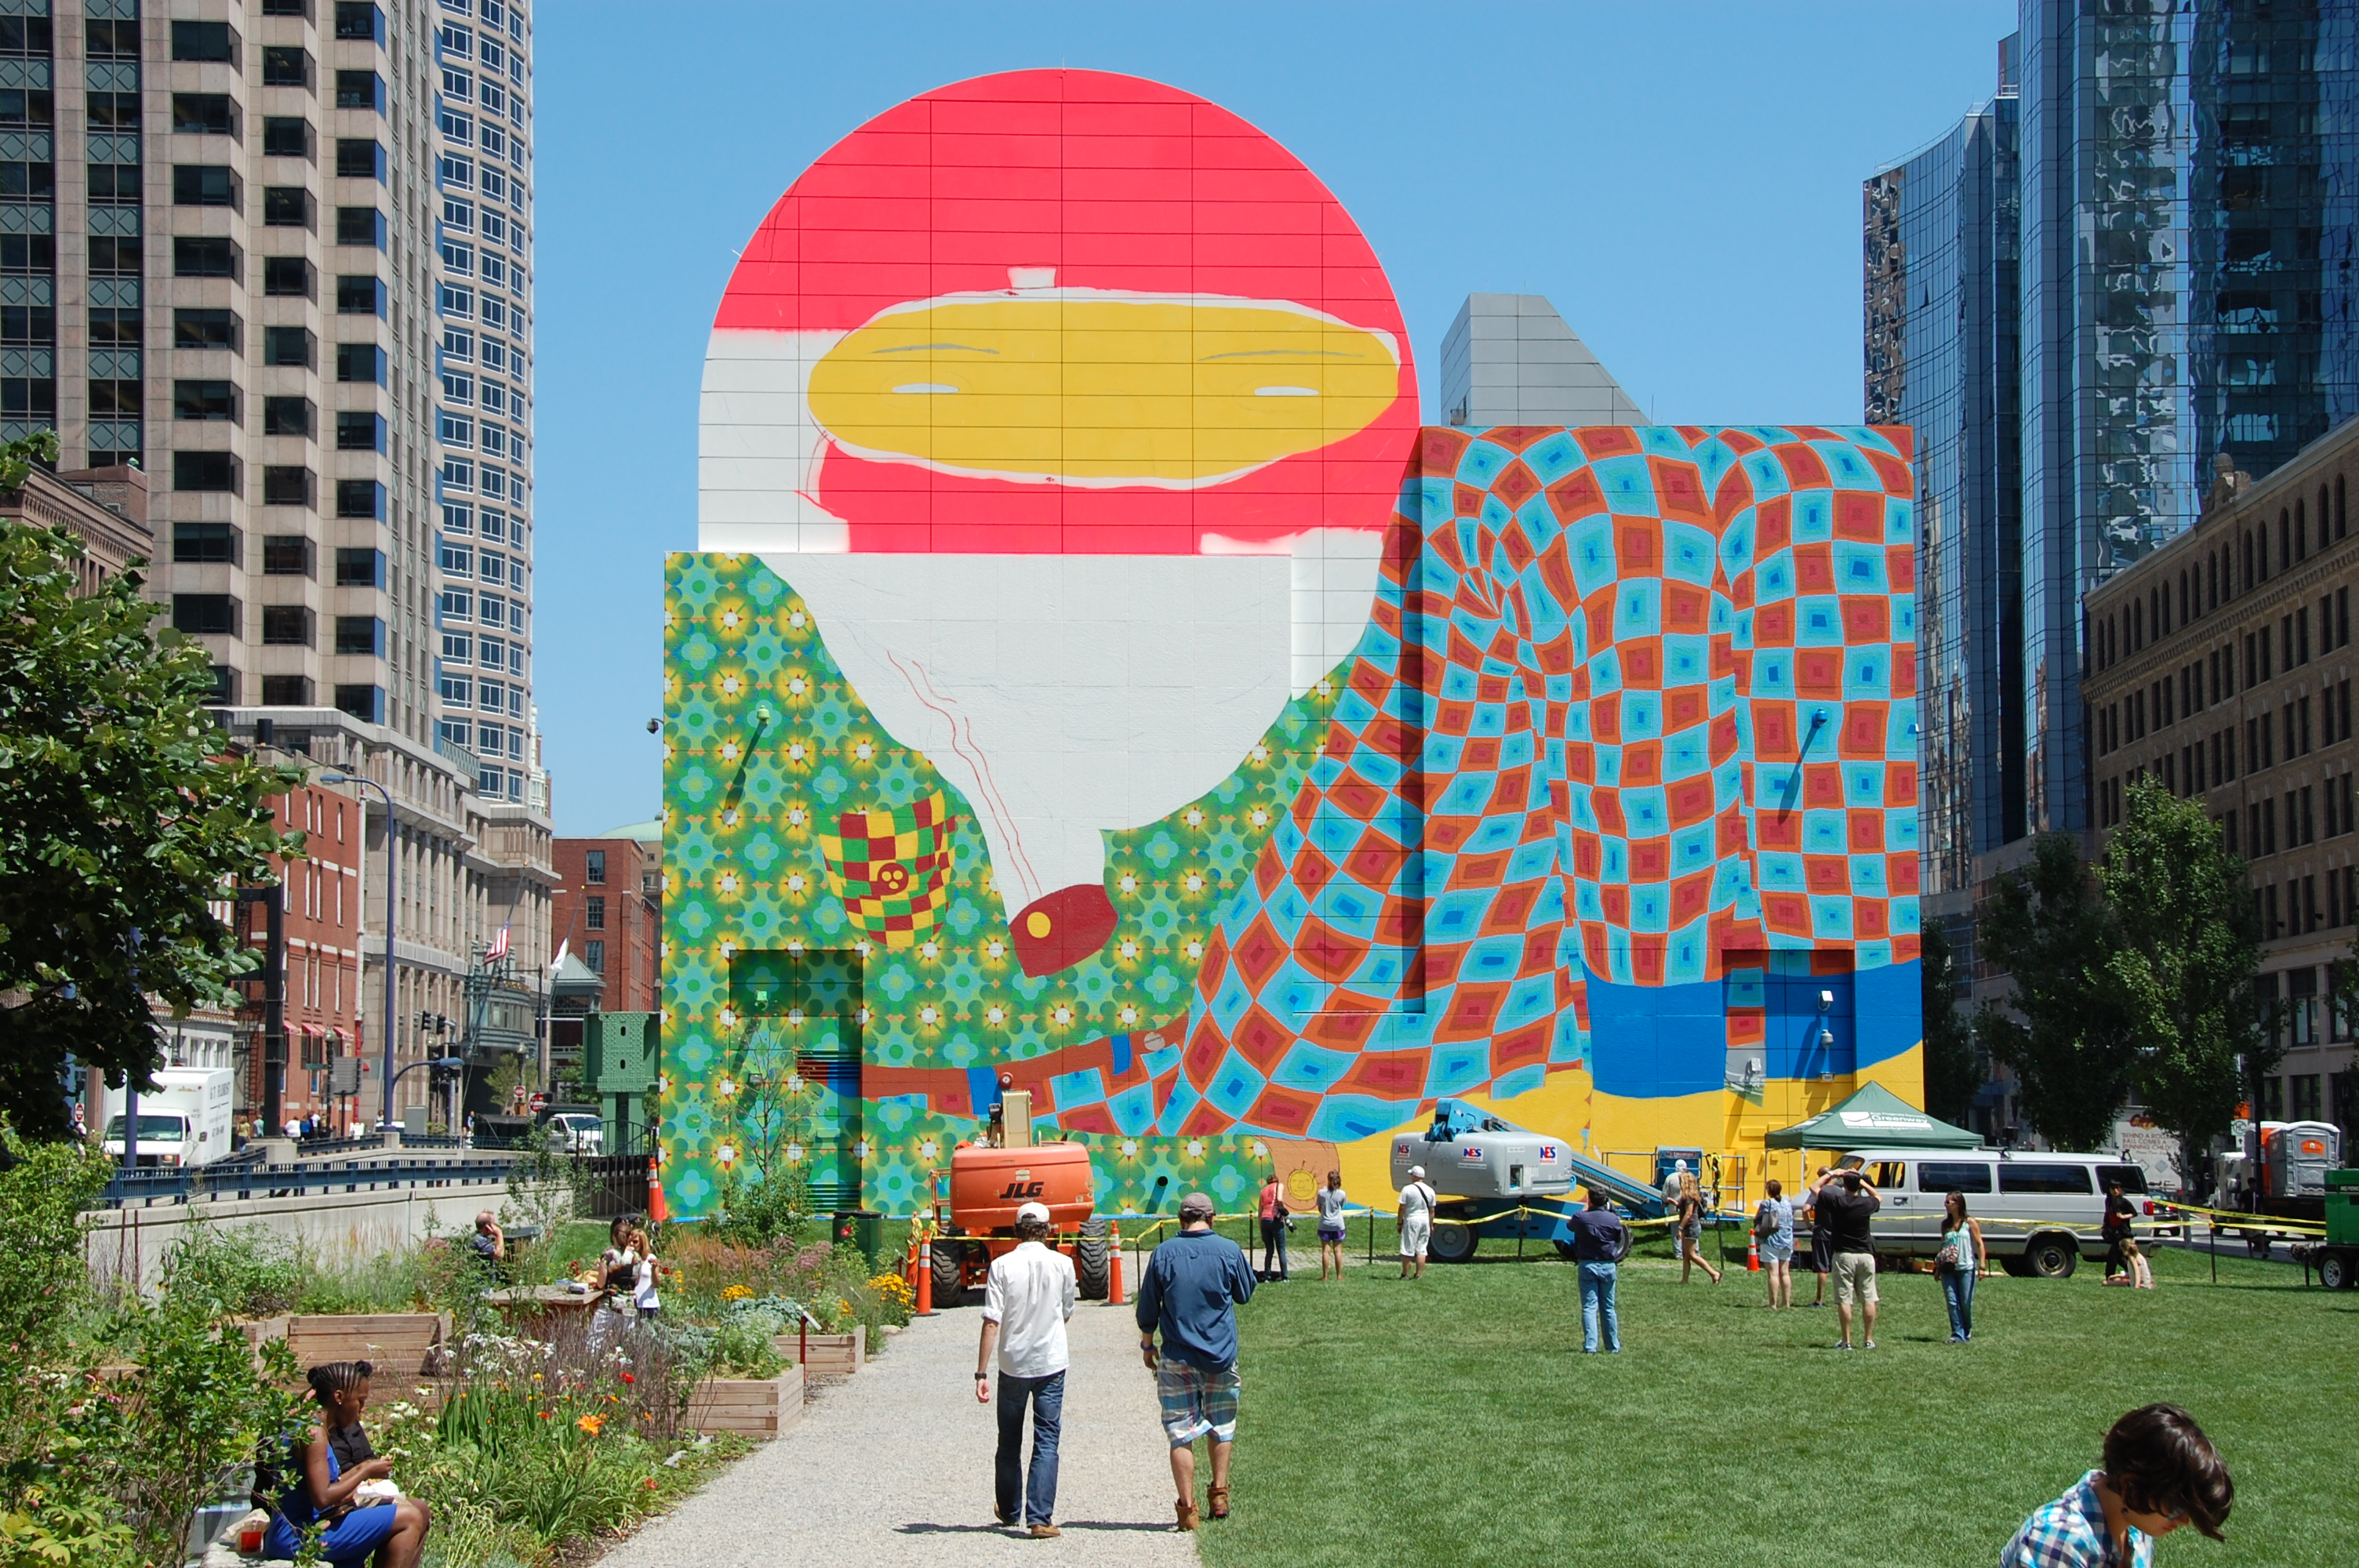 Os g meos color boston jennifer bruni for Dewey square mural